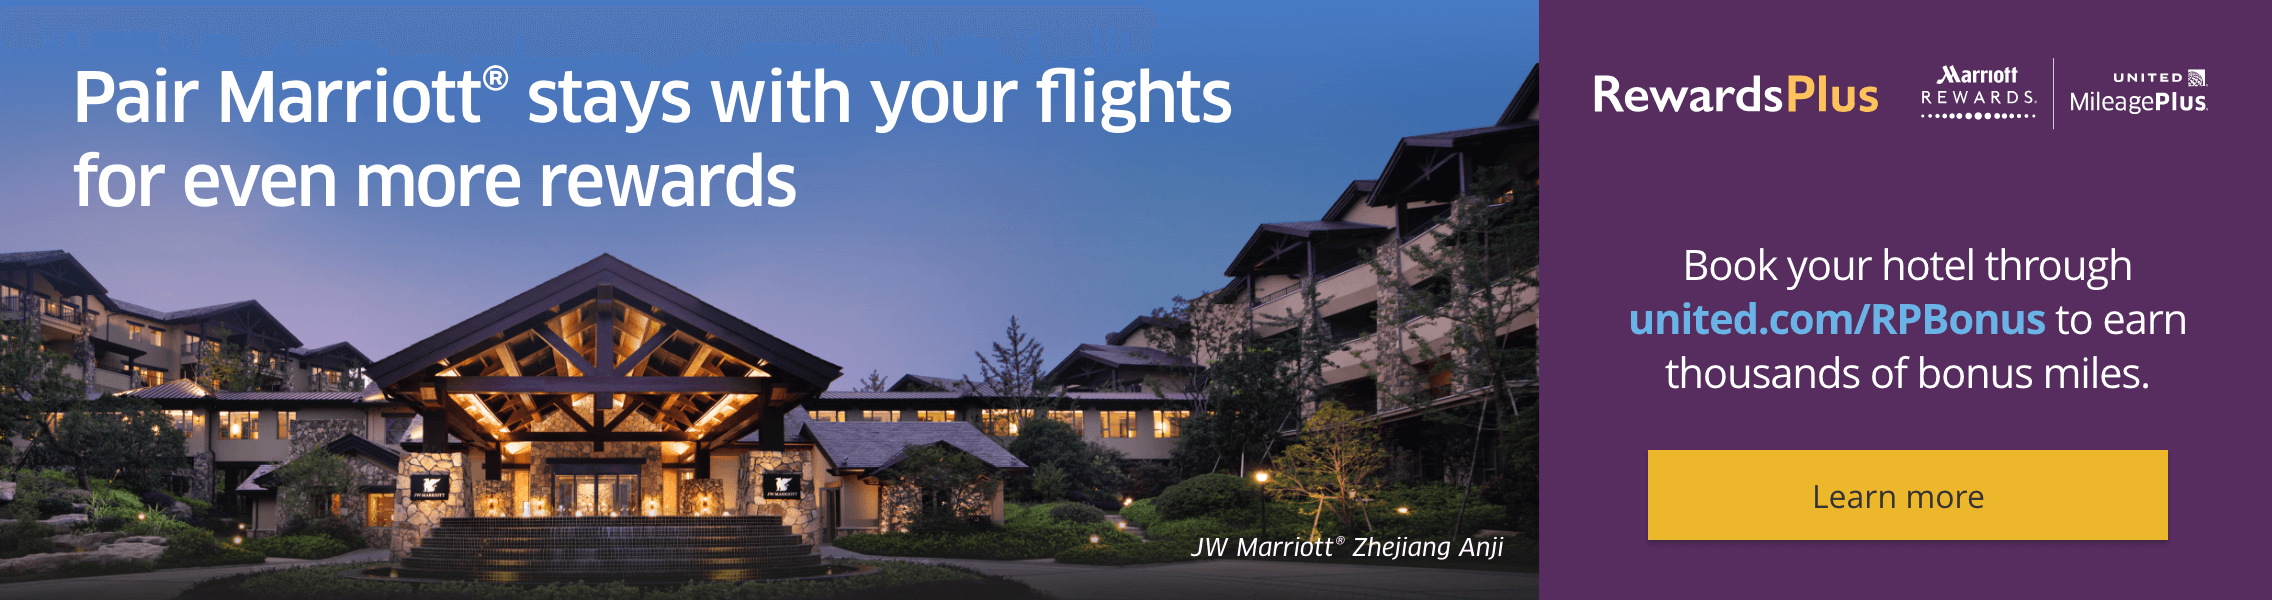 Pair Marriott stays with your flights for even more rewards. Book your hotel through united.com/RPBonus to earn thousands of bonus miles. Learn more about this offer.